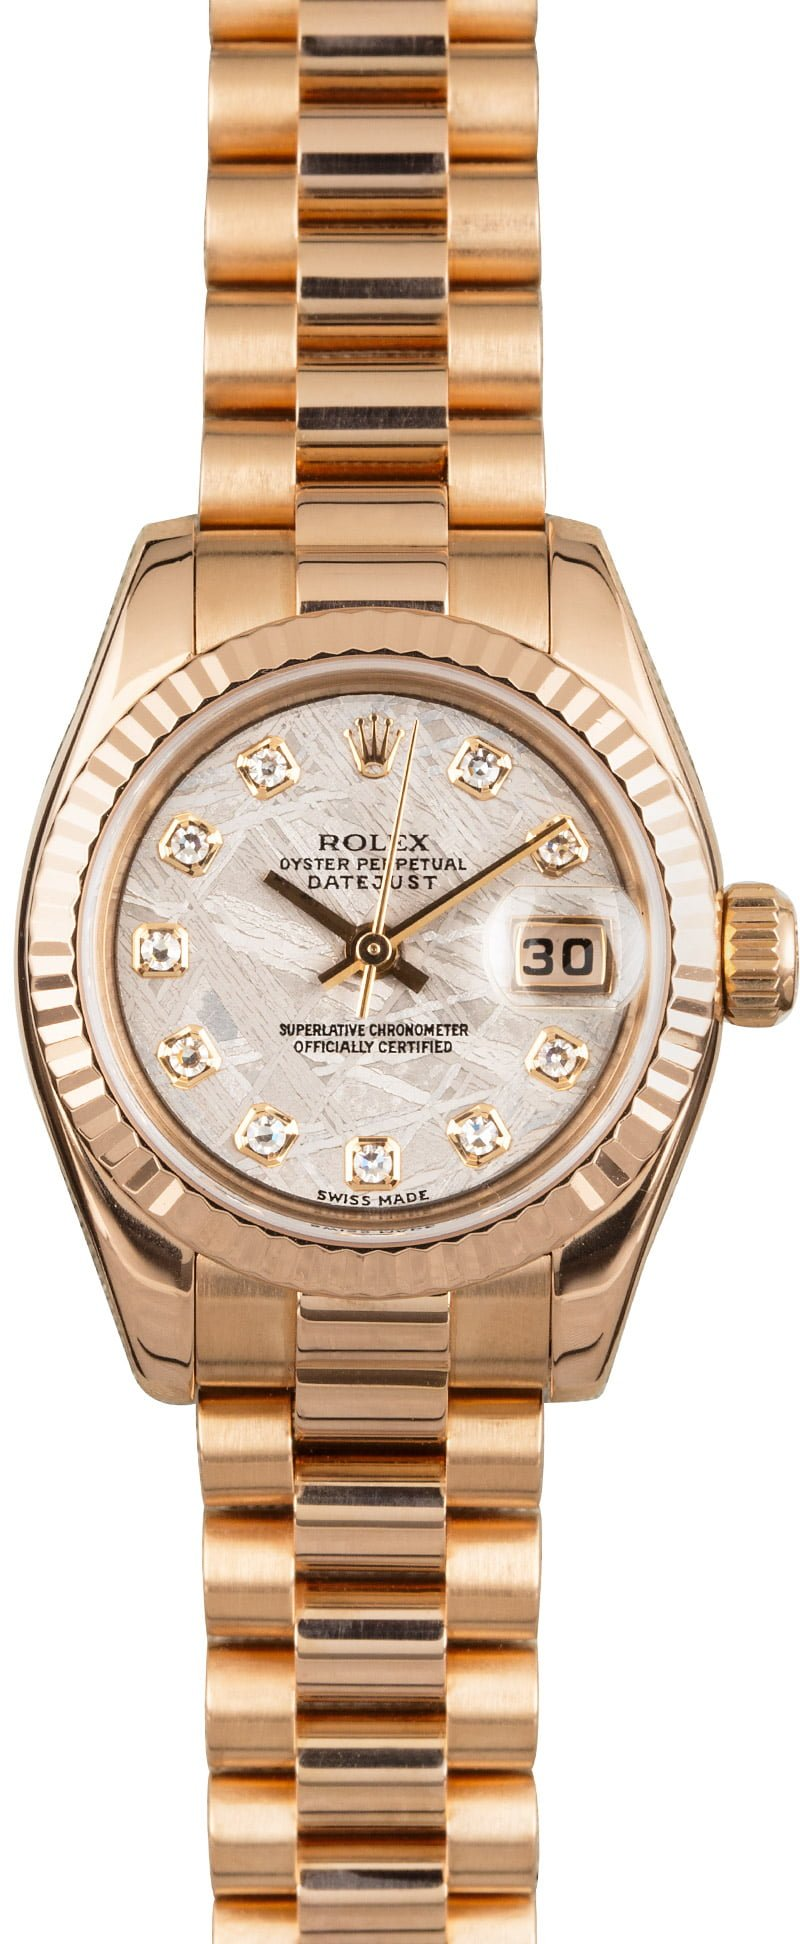 Buy Used Rolex Lady Datejust 179175 | Bobs Watches - Sku